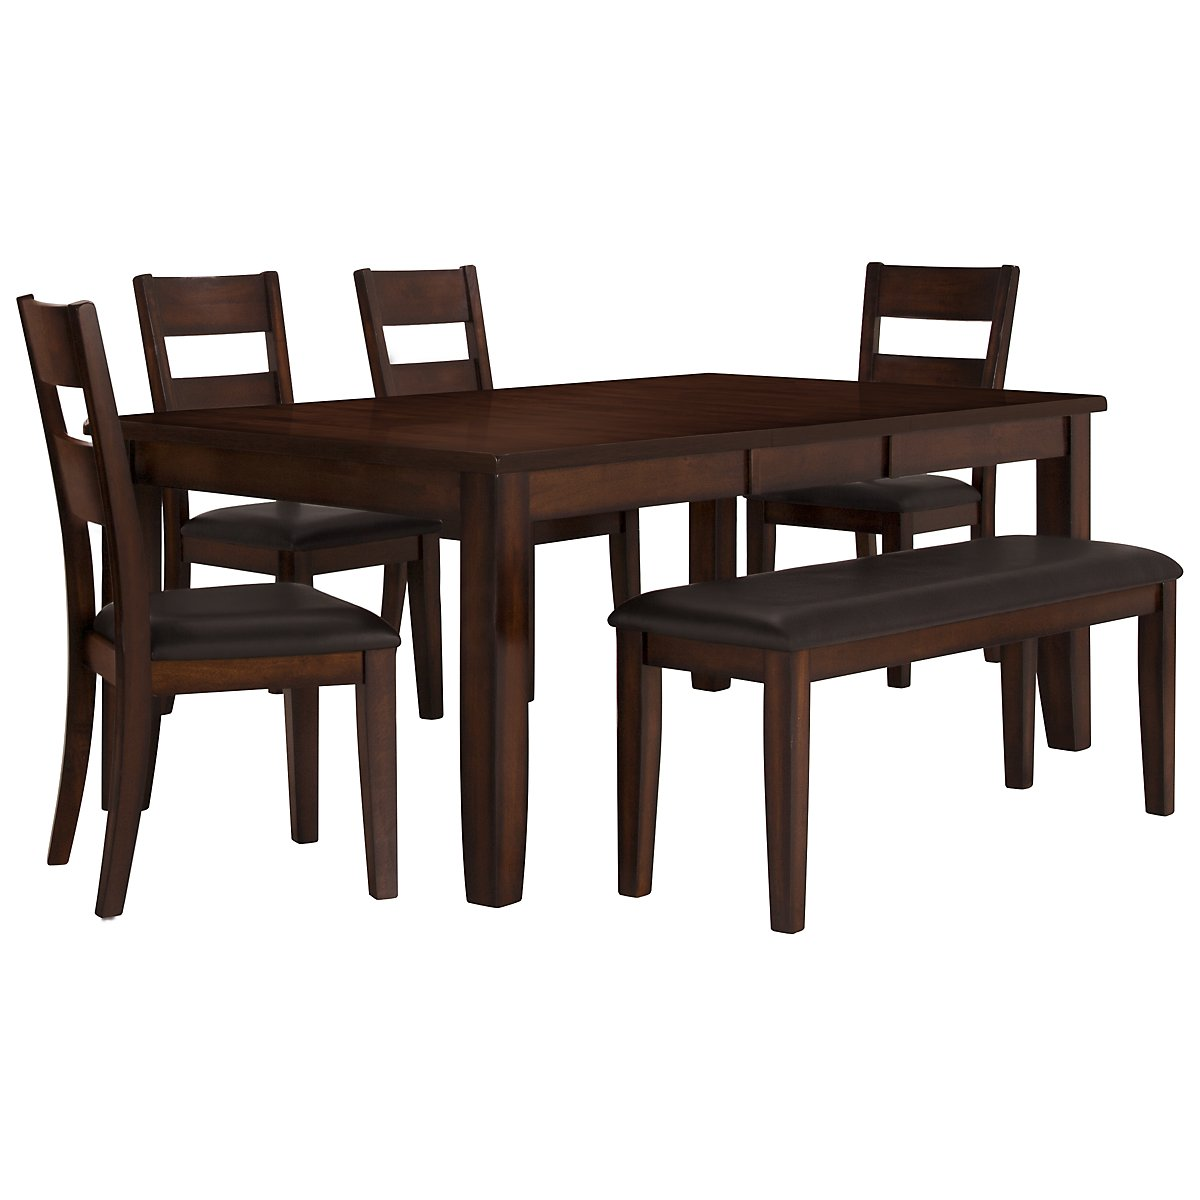 city furniture mango2 dark tone rectangular table 4. Black Bedroom Furniture Sets. Home Design Ideas